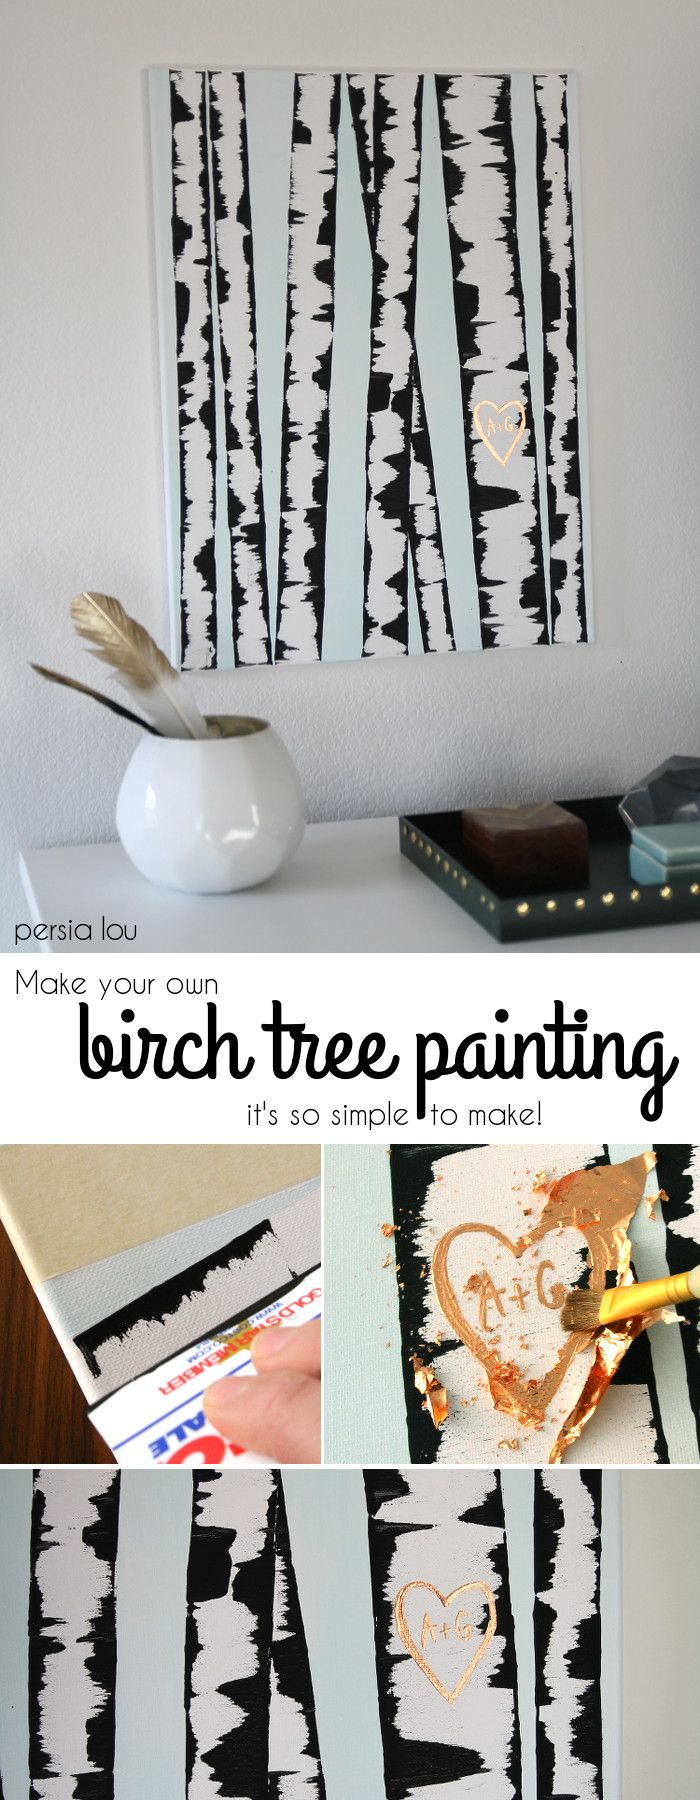 Cheap and Easy Homemade Wall Art Design | DIY Birch Tree Painting by DIY Ready at http://diyready.com/diy-wall-art-you-can-make-in-under-an-hour/